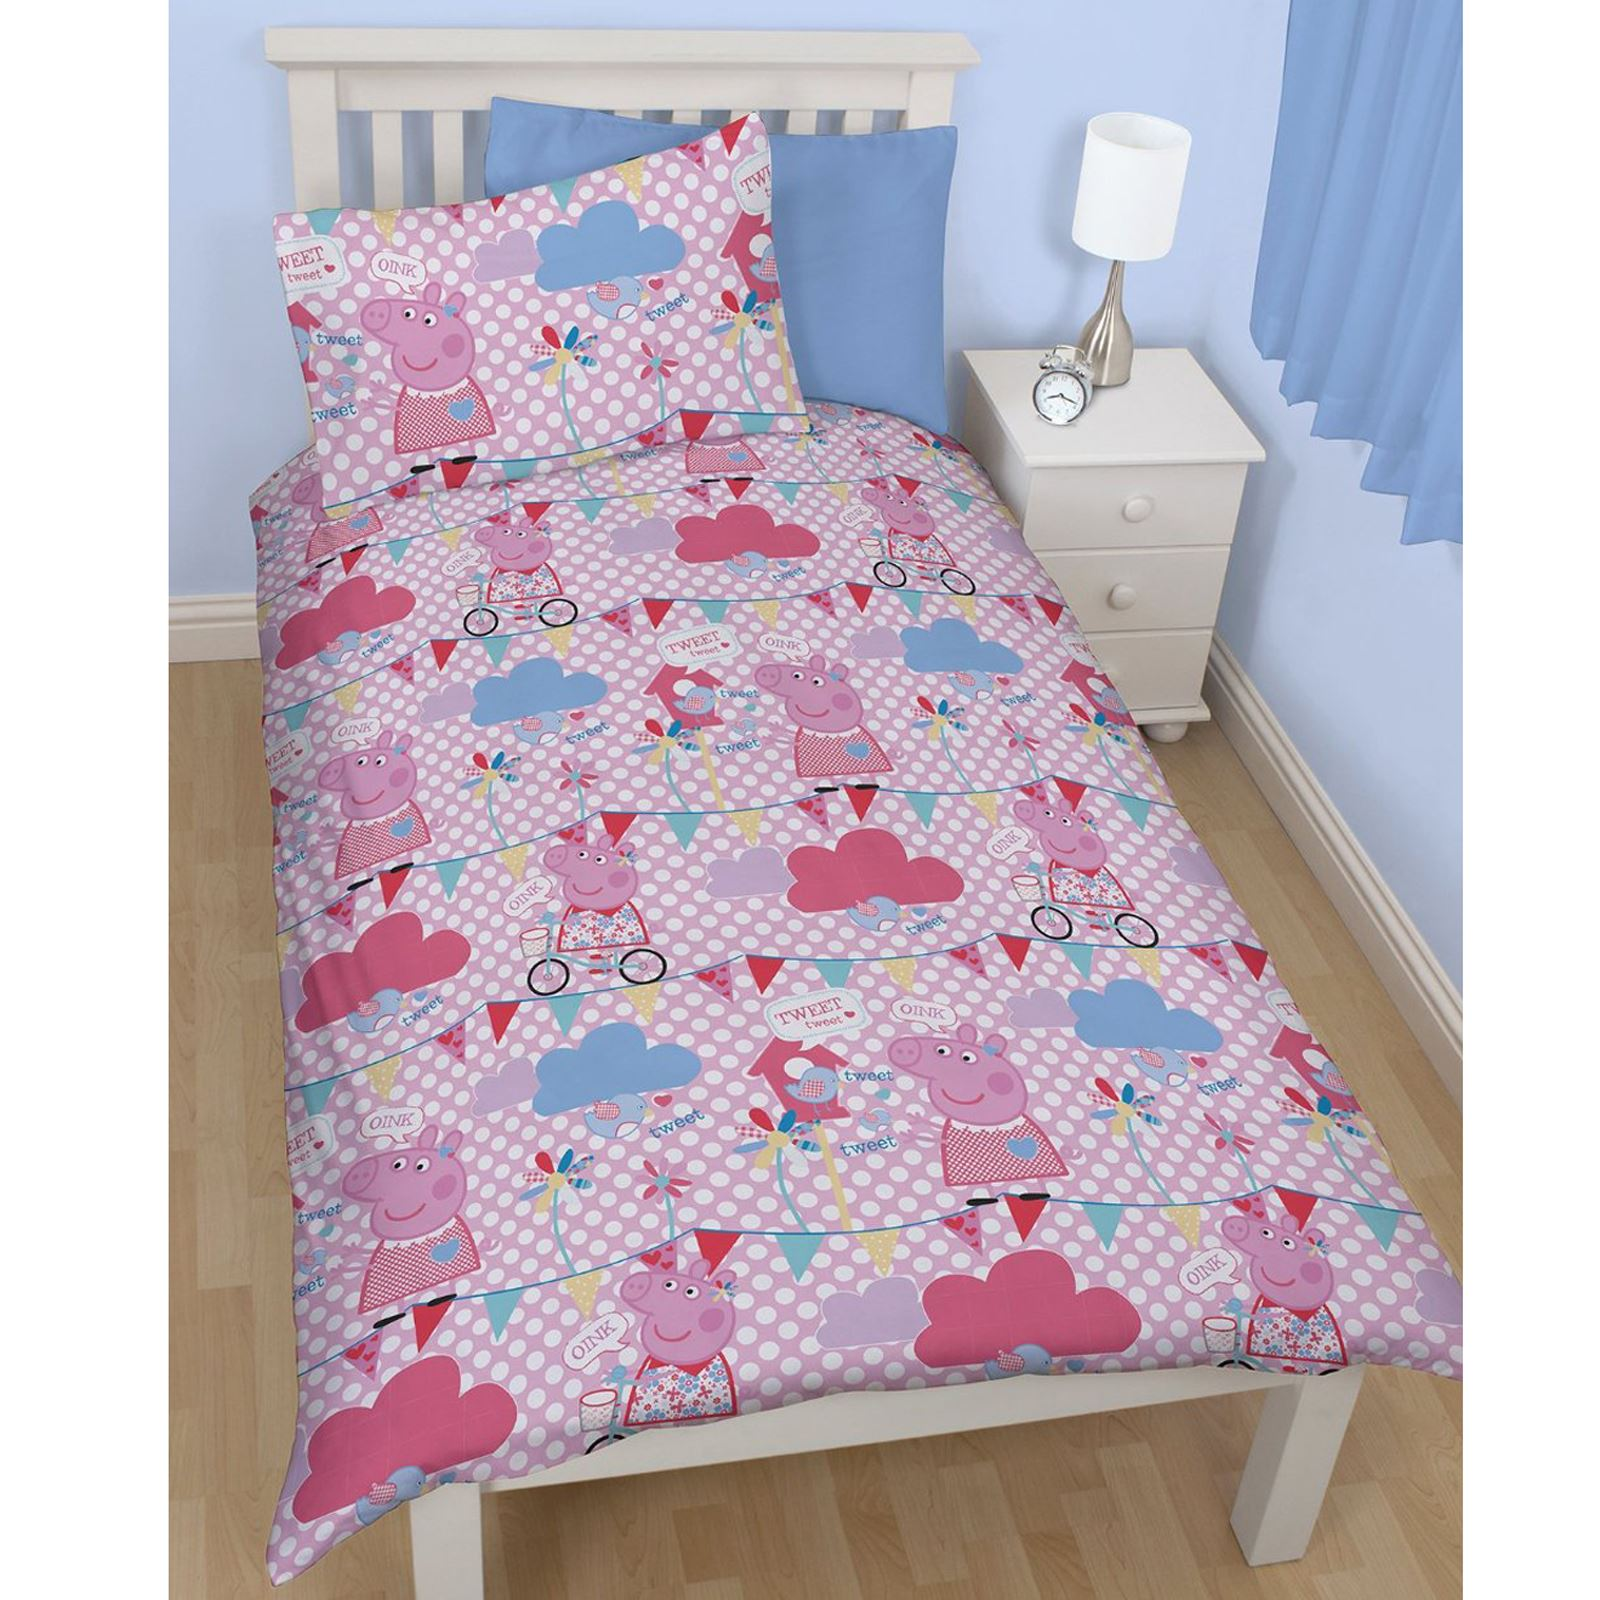 Peppa pig tweet set housse de couette simple neuf pour for Housse de couette simple